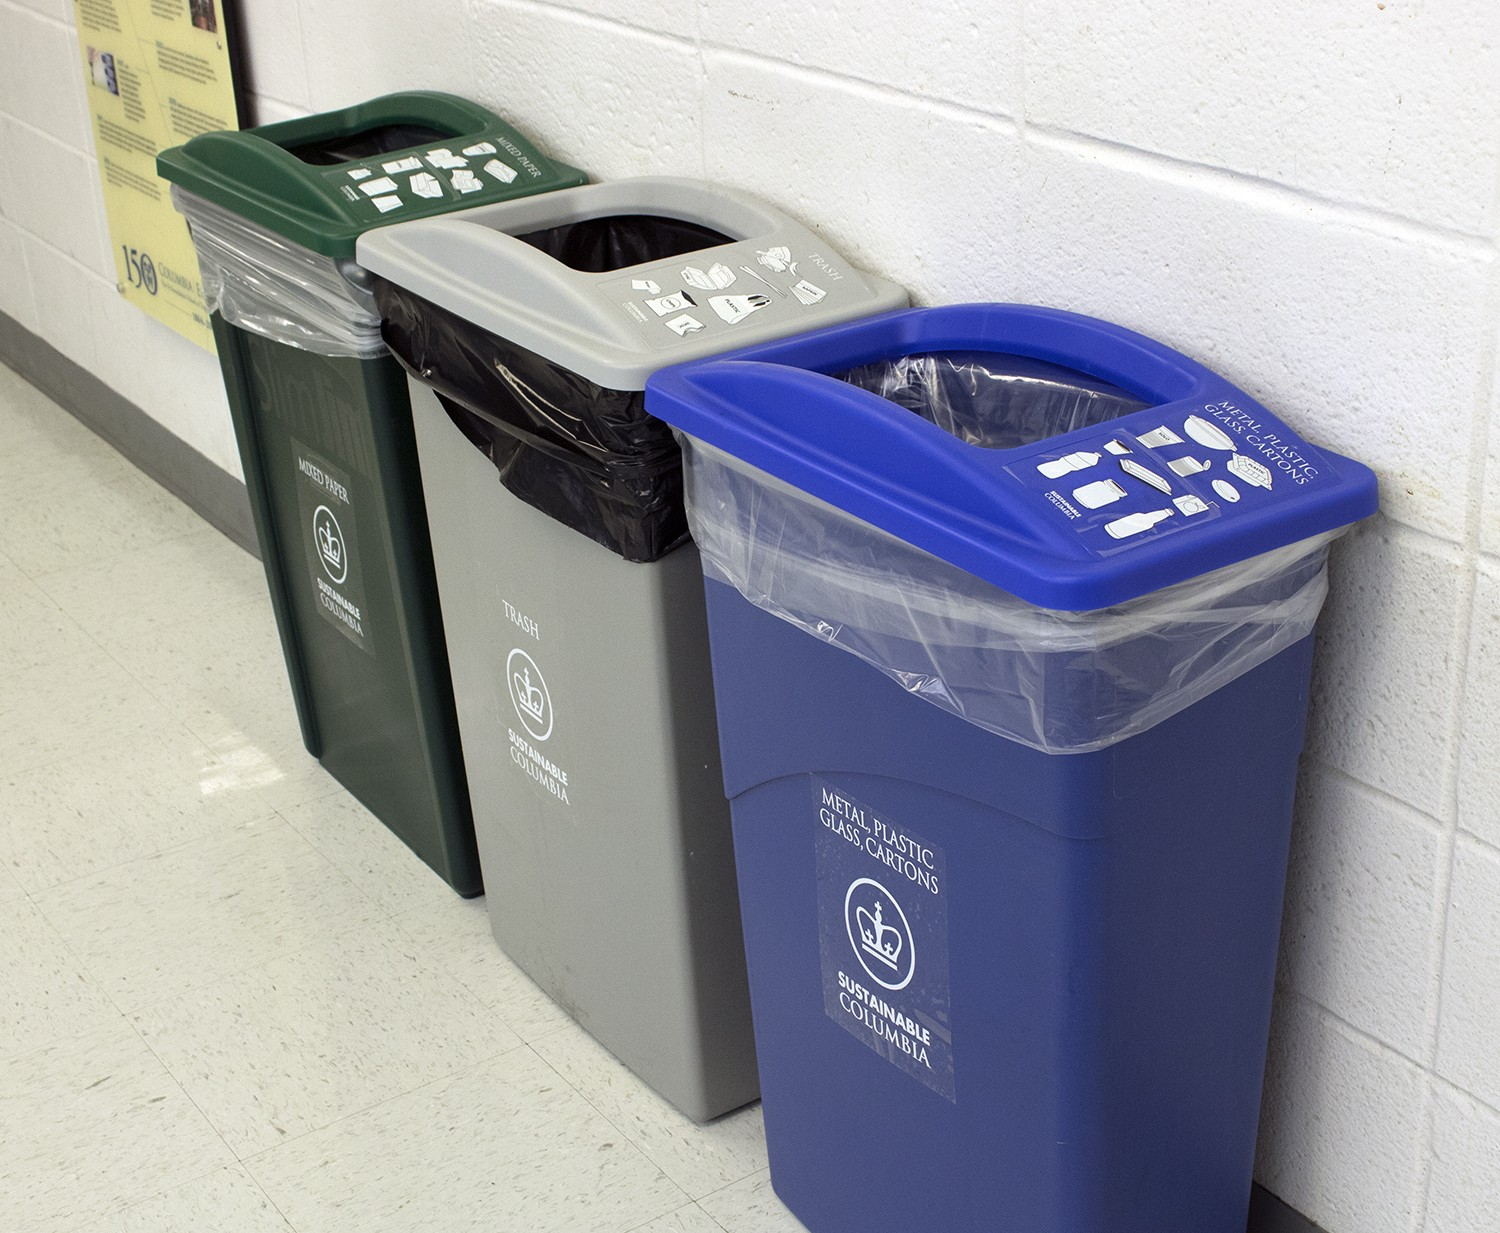 New recycling bin signage in Mudd Hall